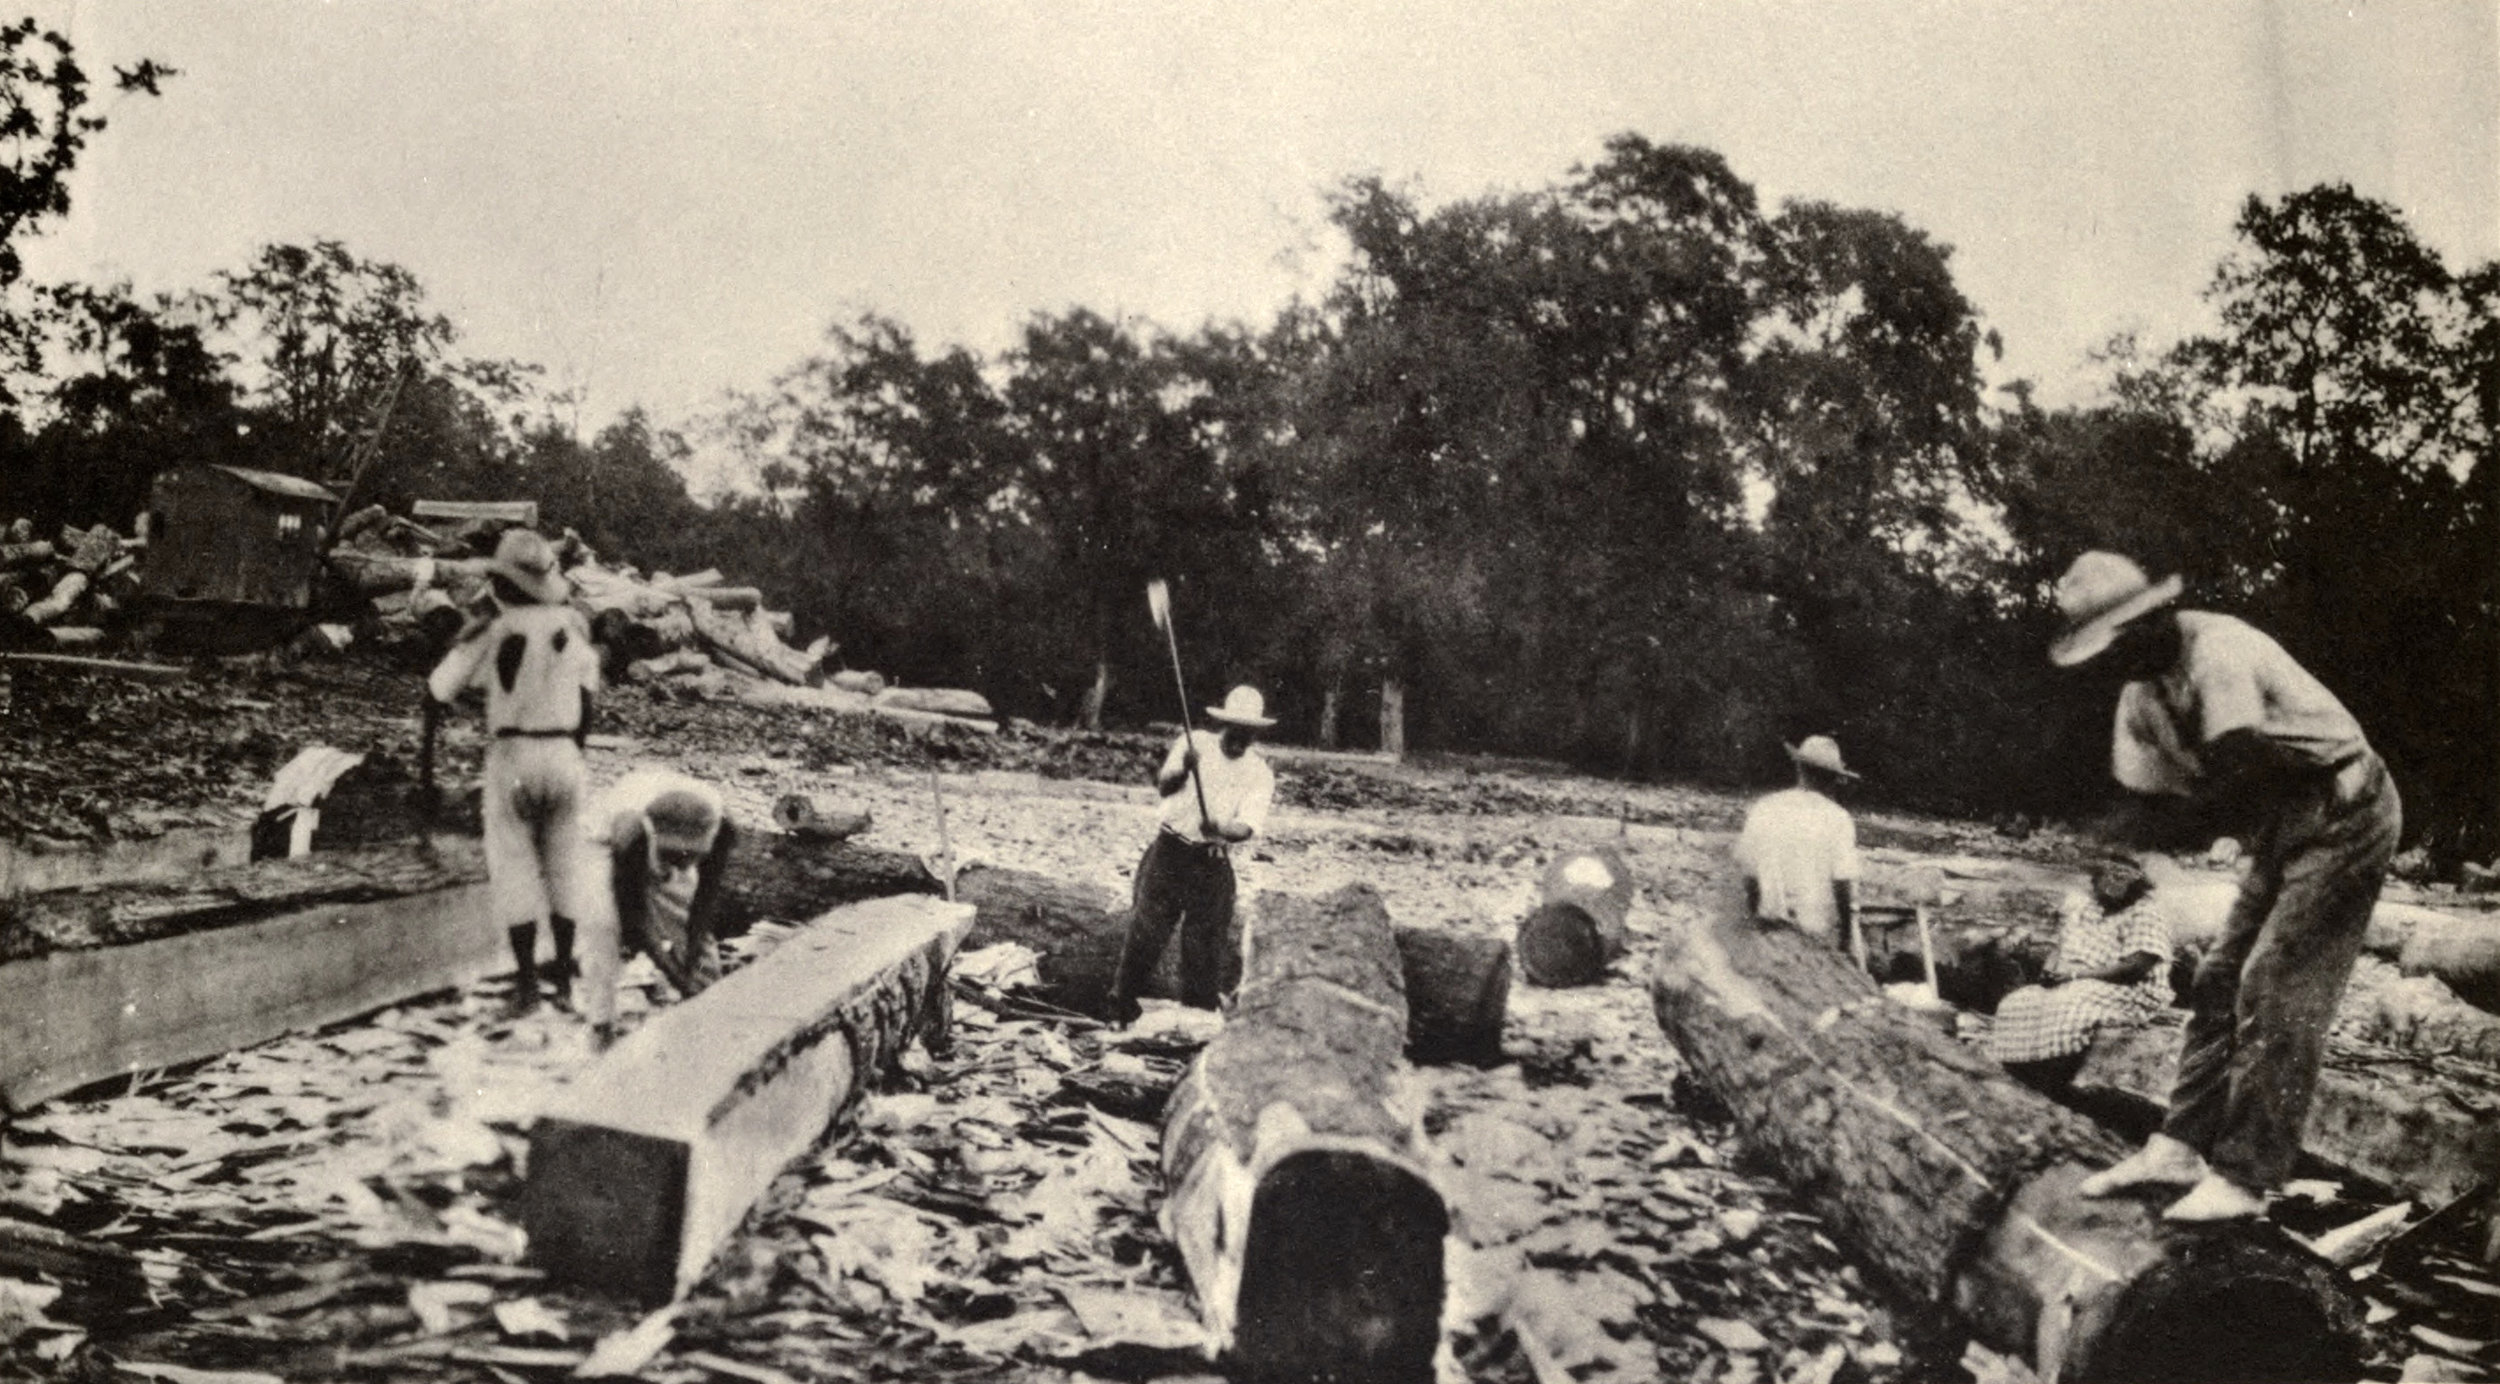 Squaring mahogany logs for export in Belize, 1936. Photo by The forests and flora of British Honduras